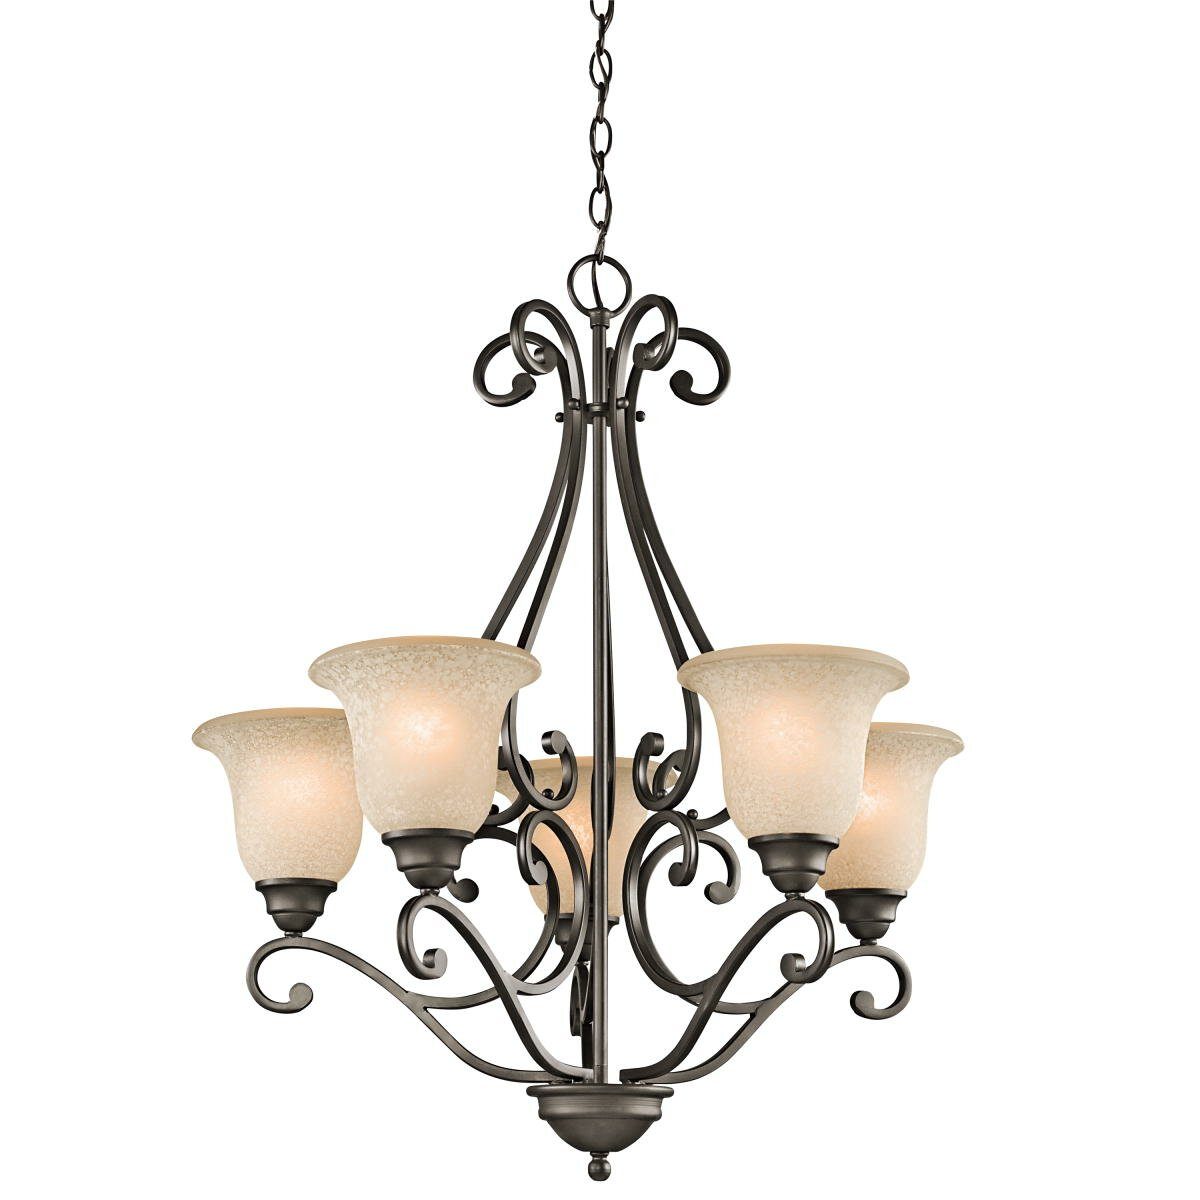 Kichler Camerena 5 Light Chandelier & Reviews